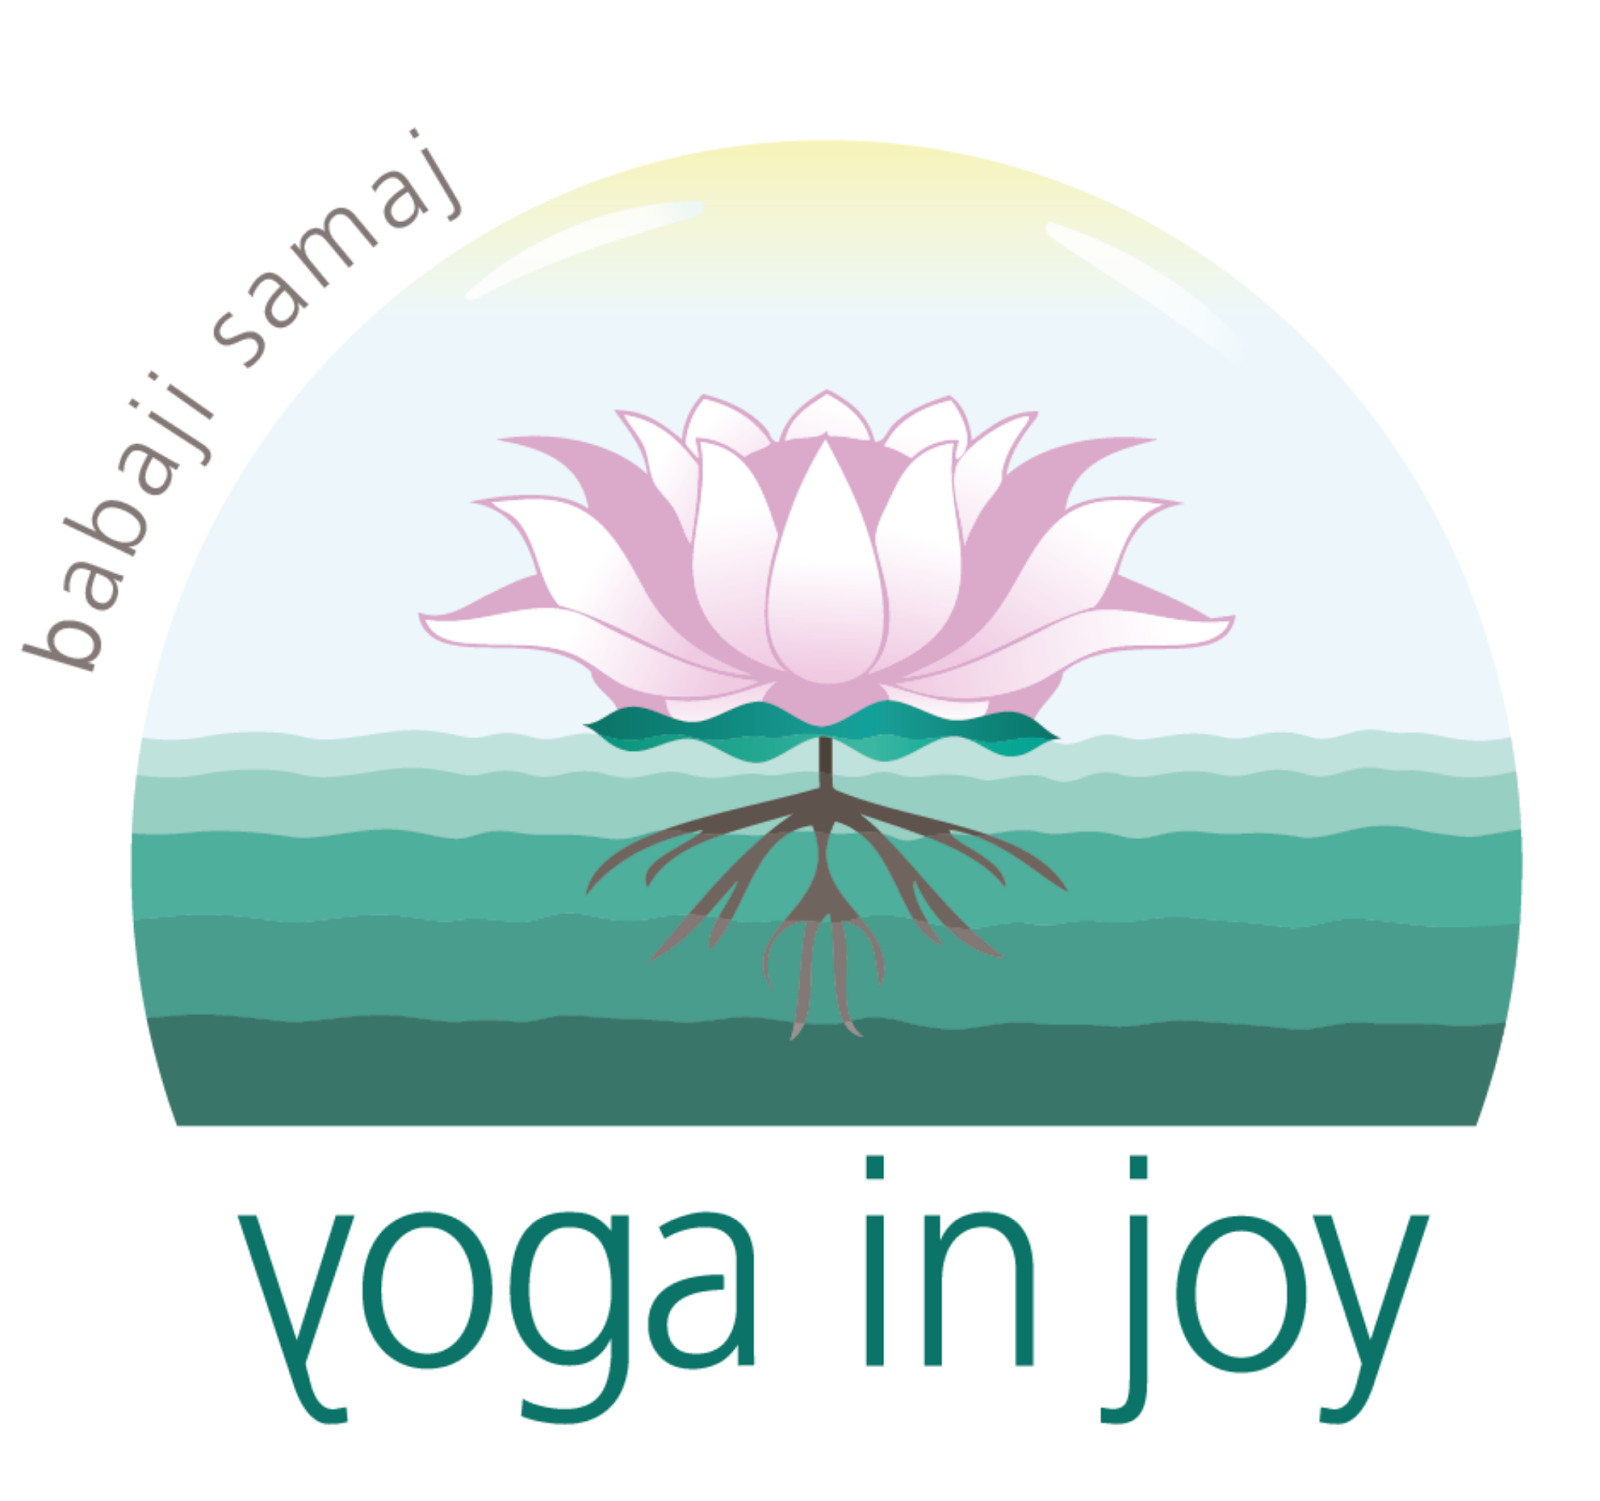 Yoga in Joy